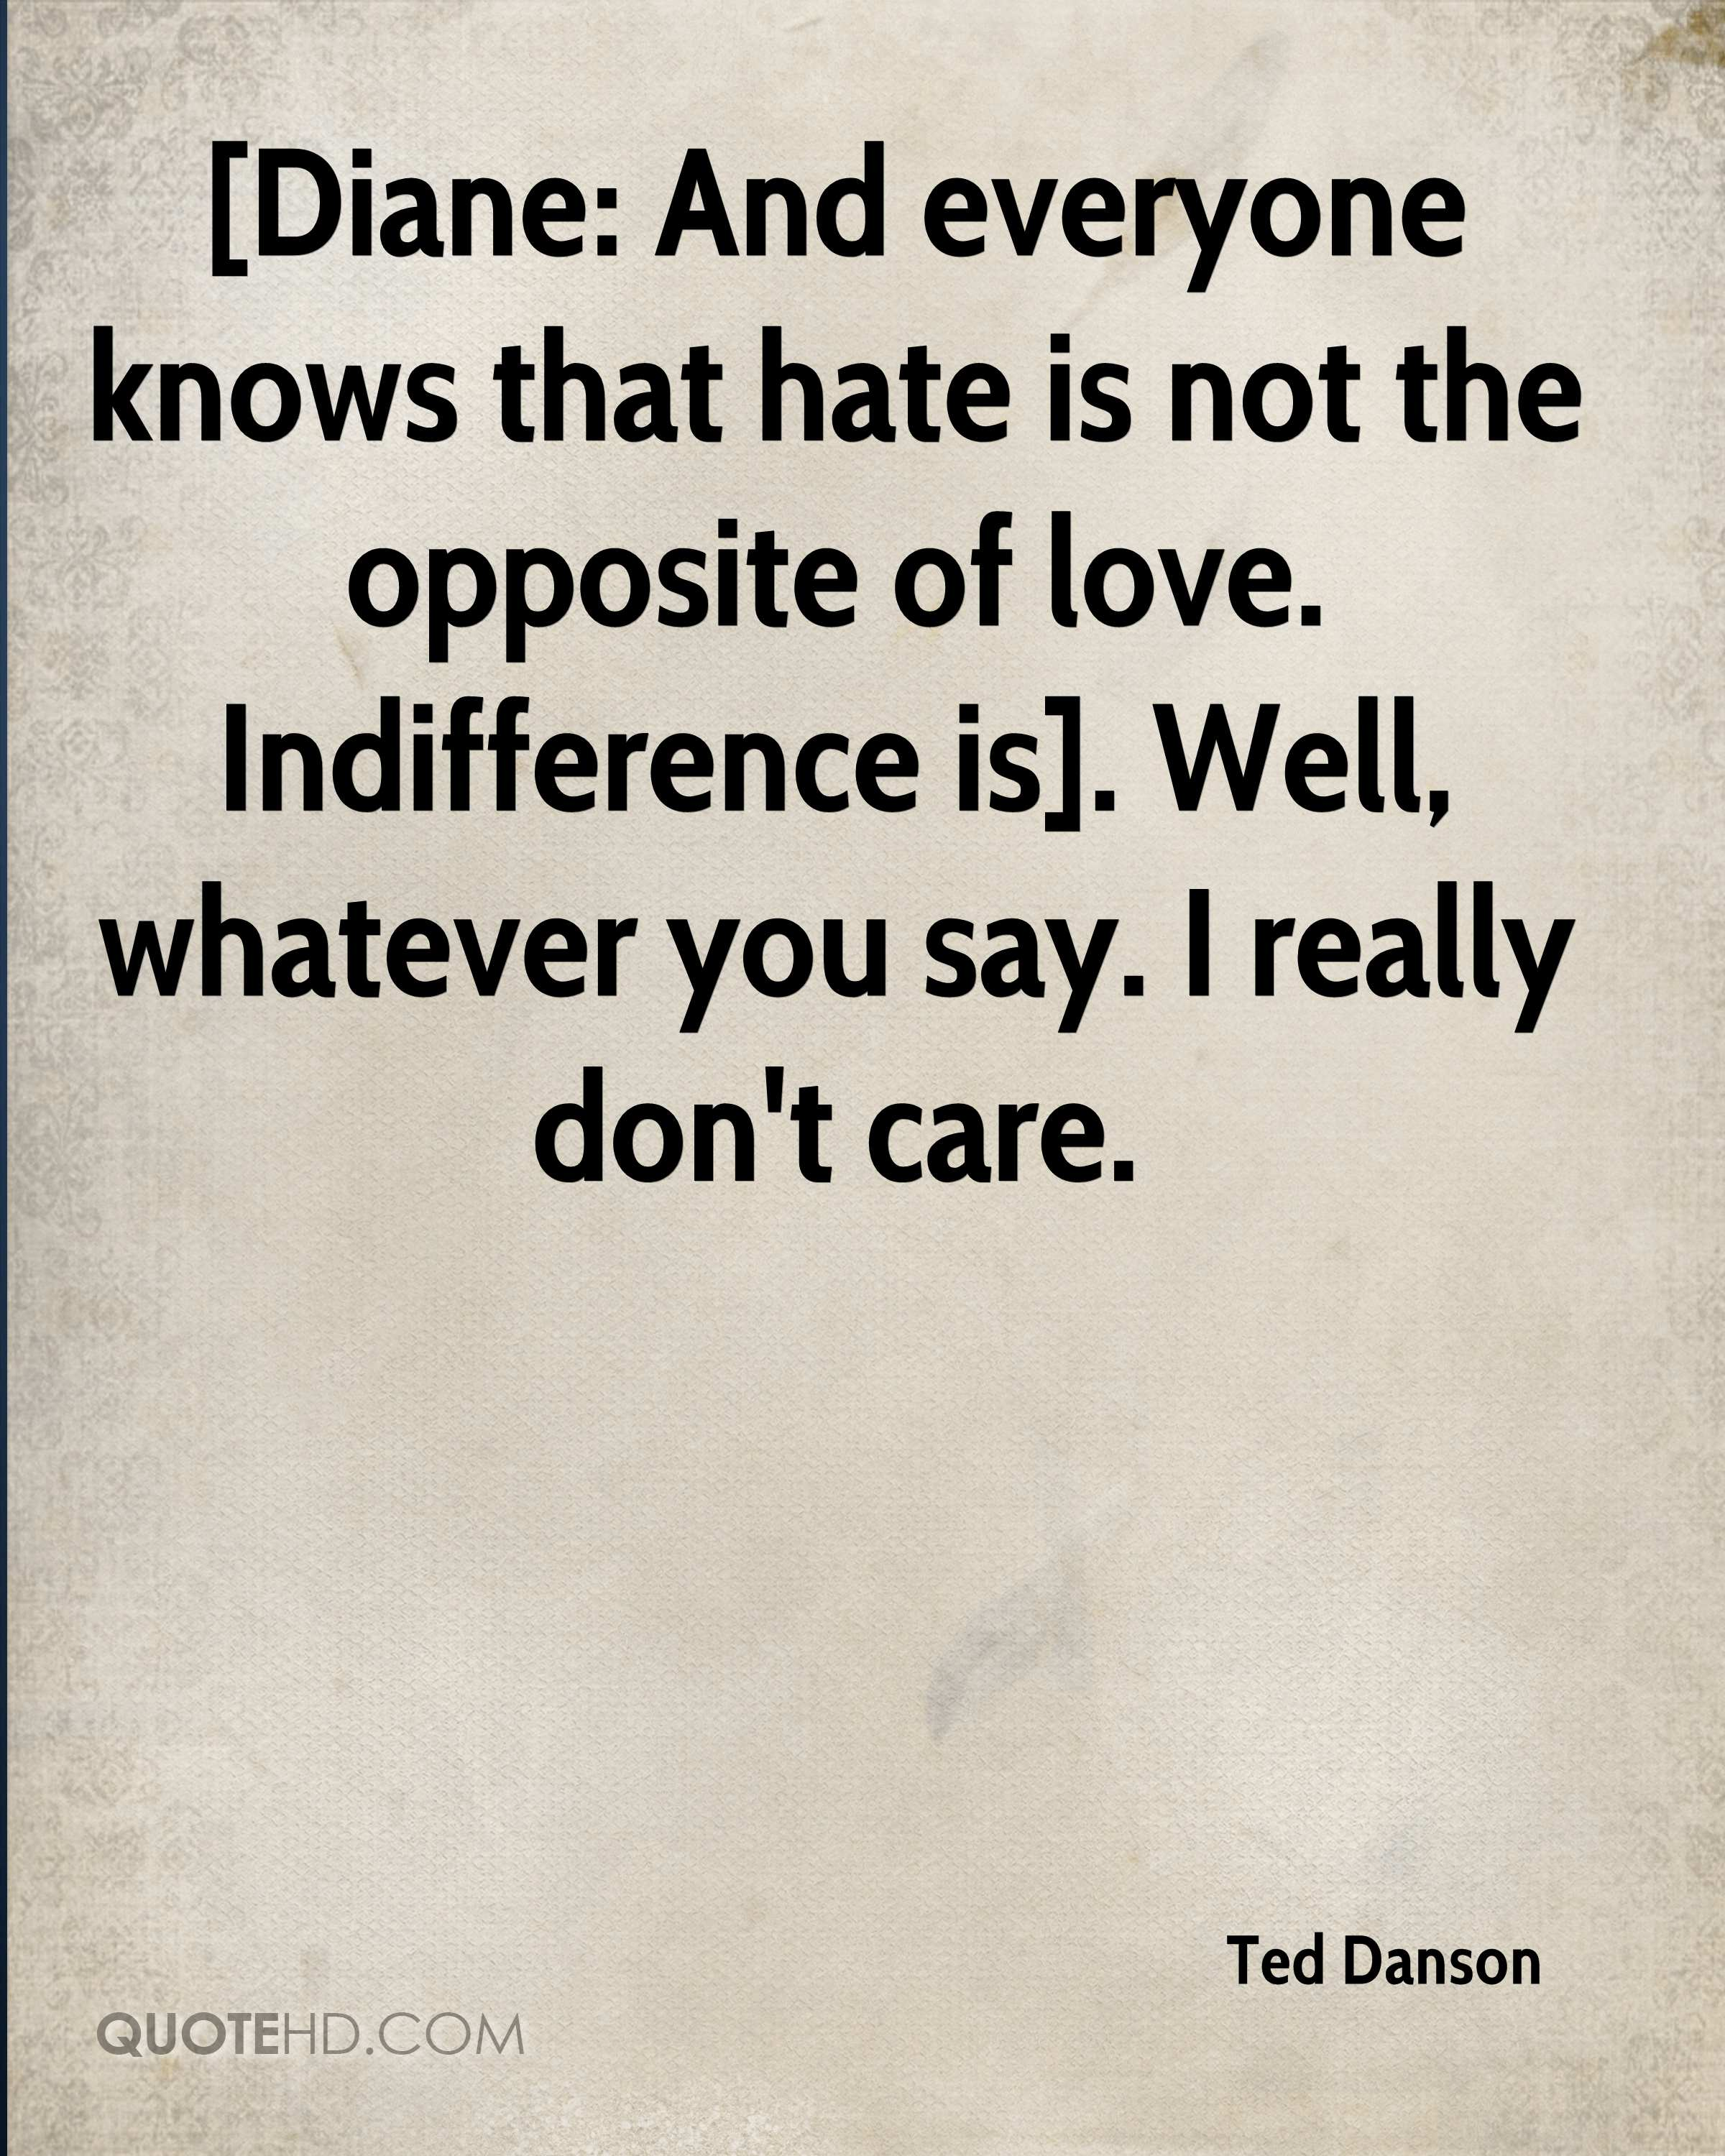 Indifference Quotes Ted Danson Quotes  Quotehd